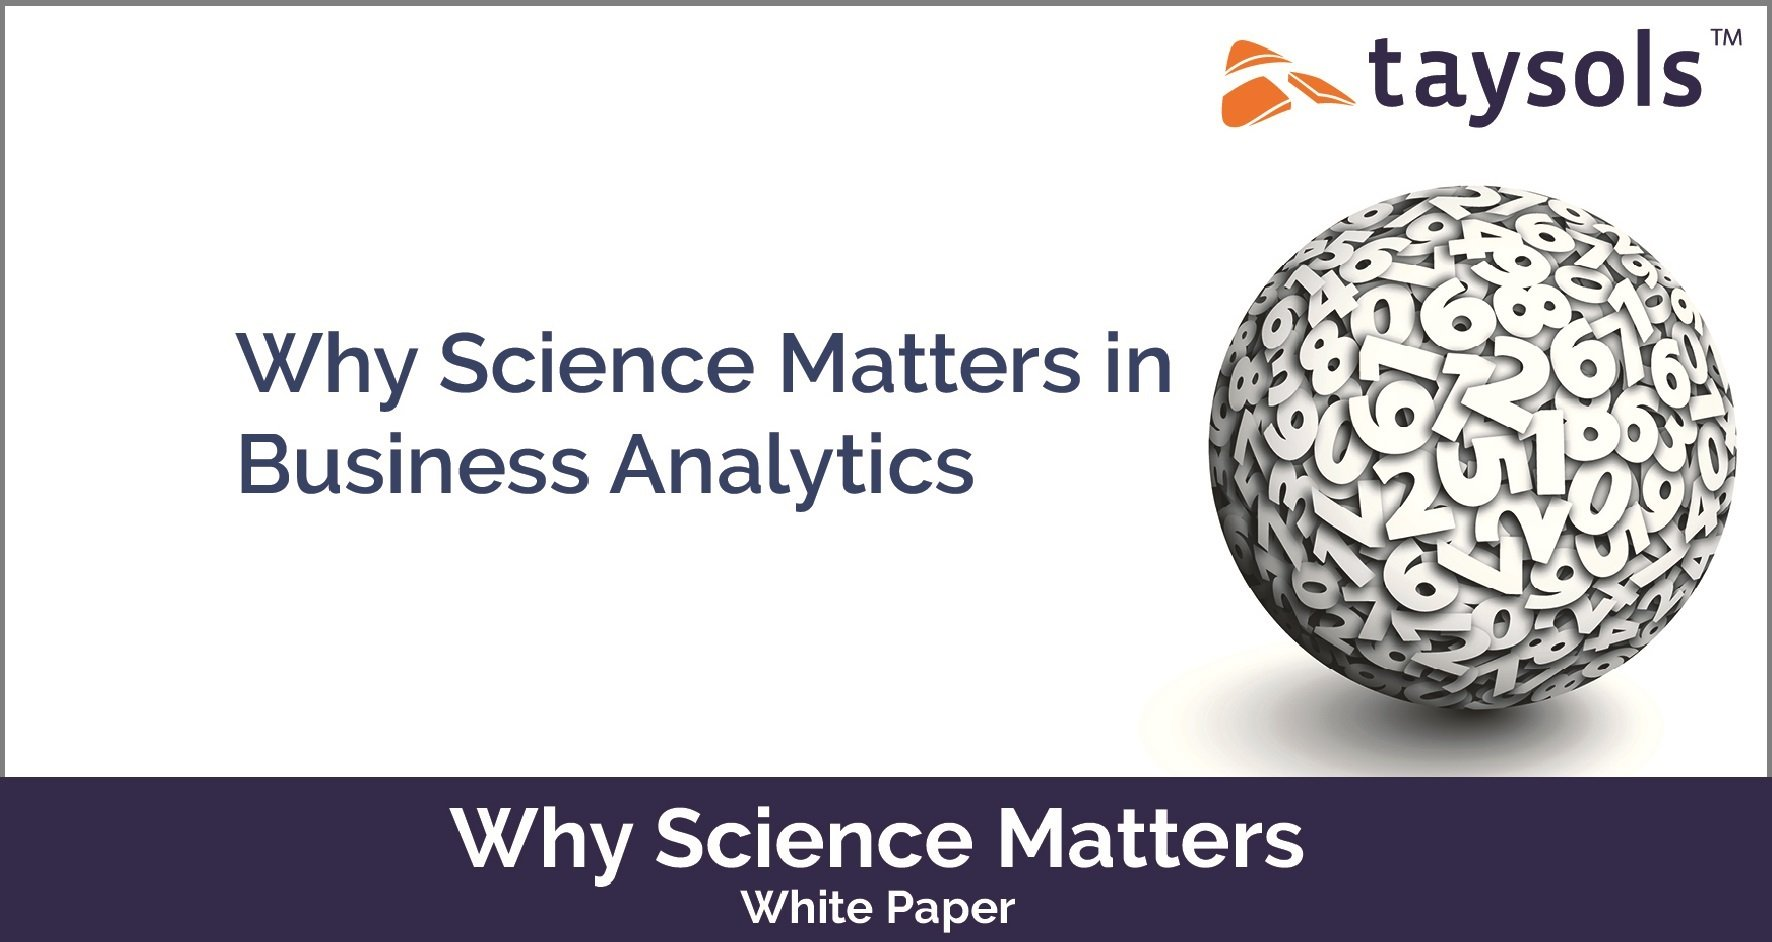 taysols_white paper_why science matters_download